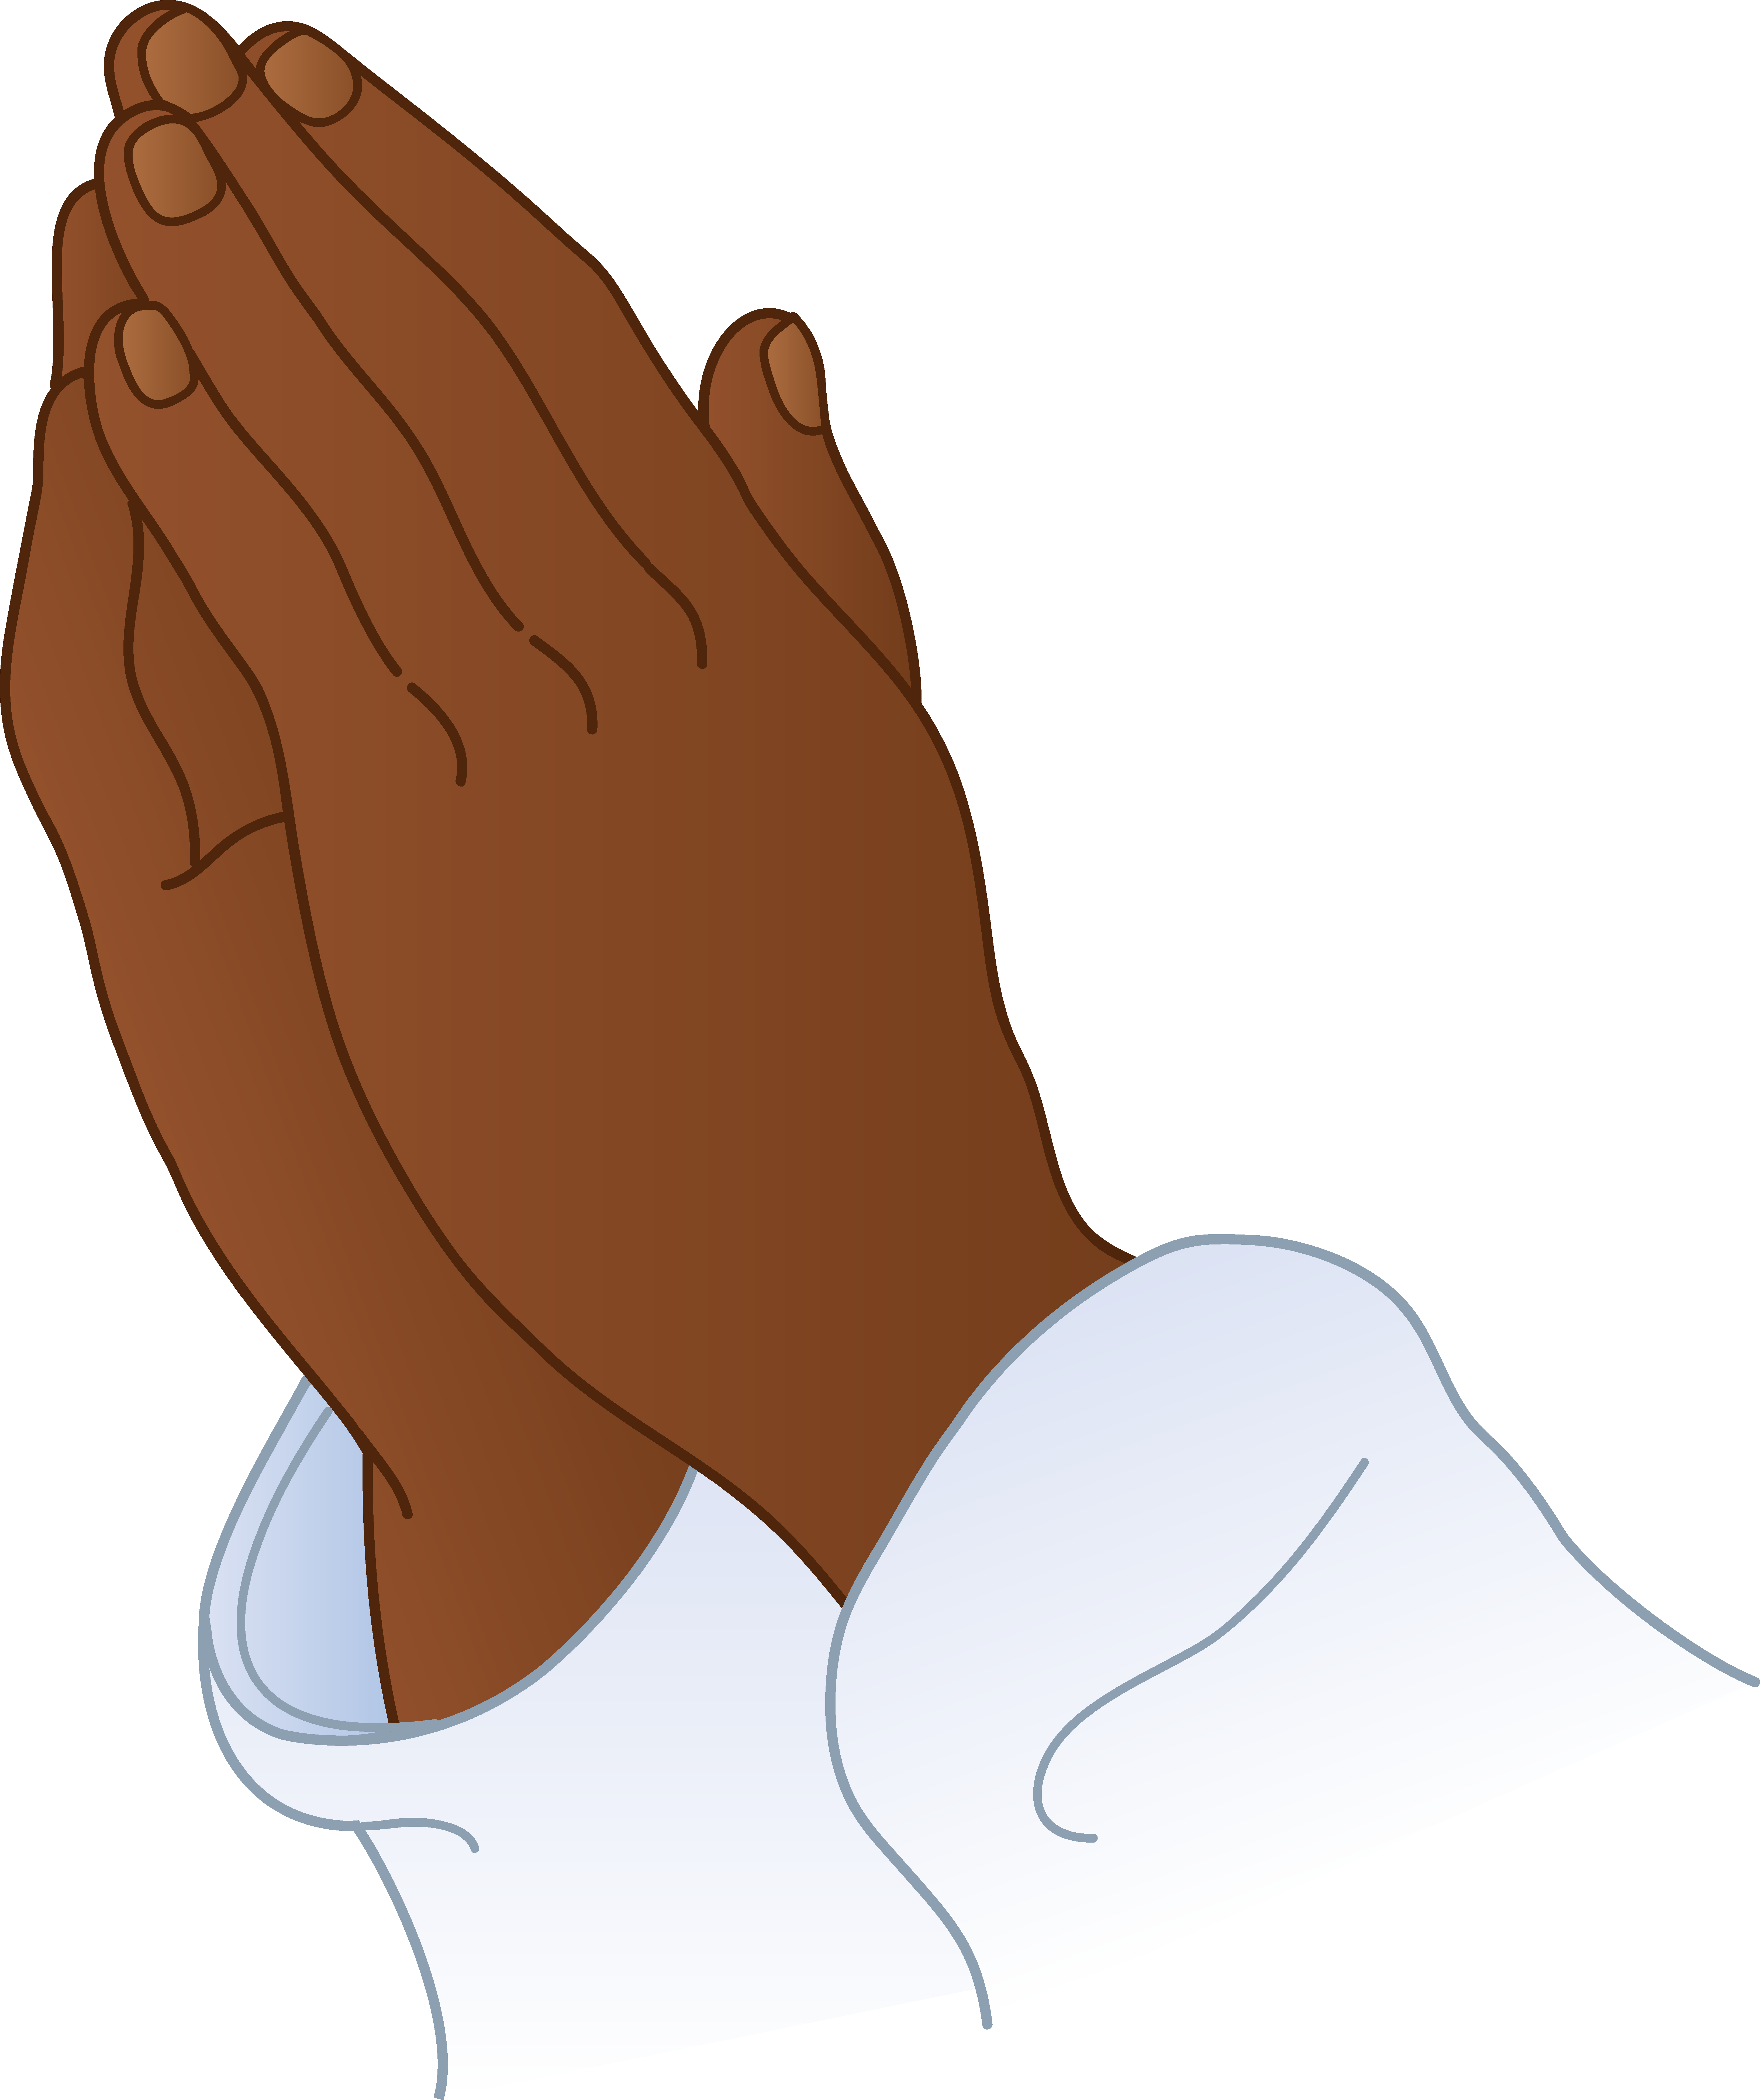 Man And Woman Praying Hands Clipart.